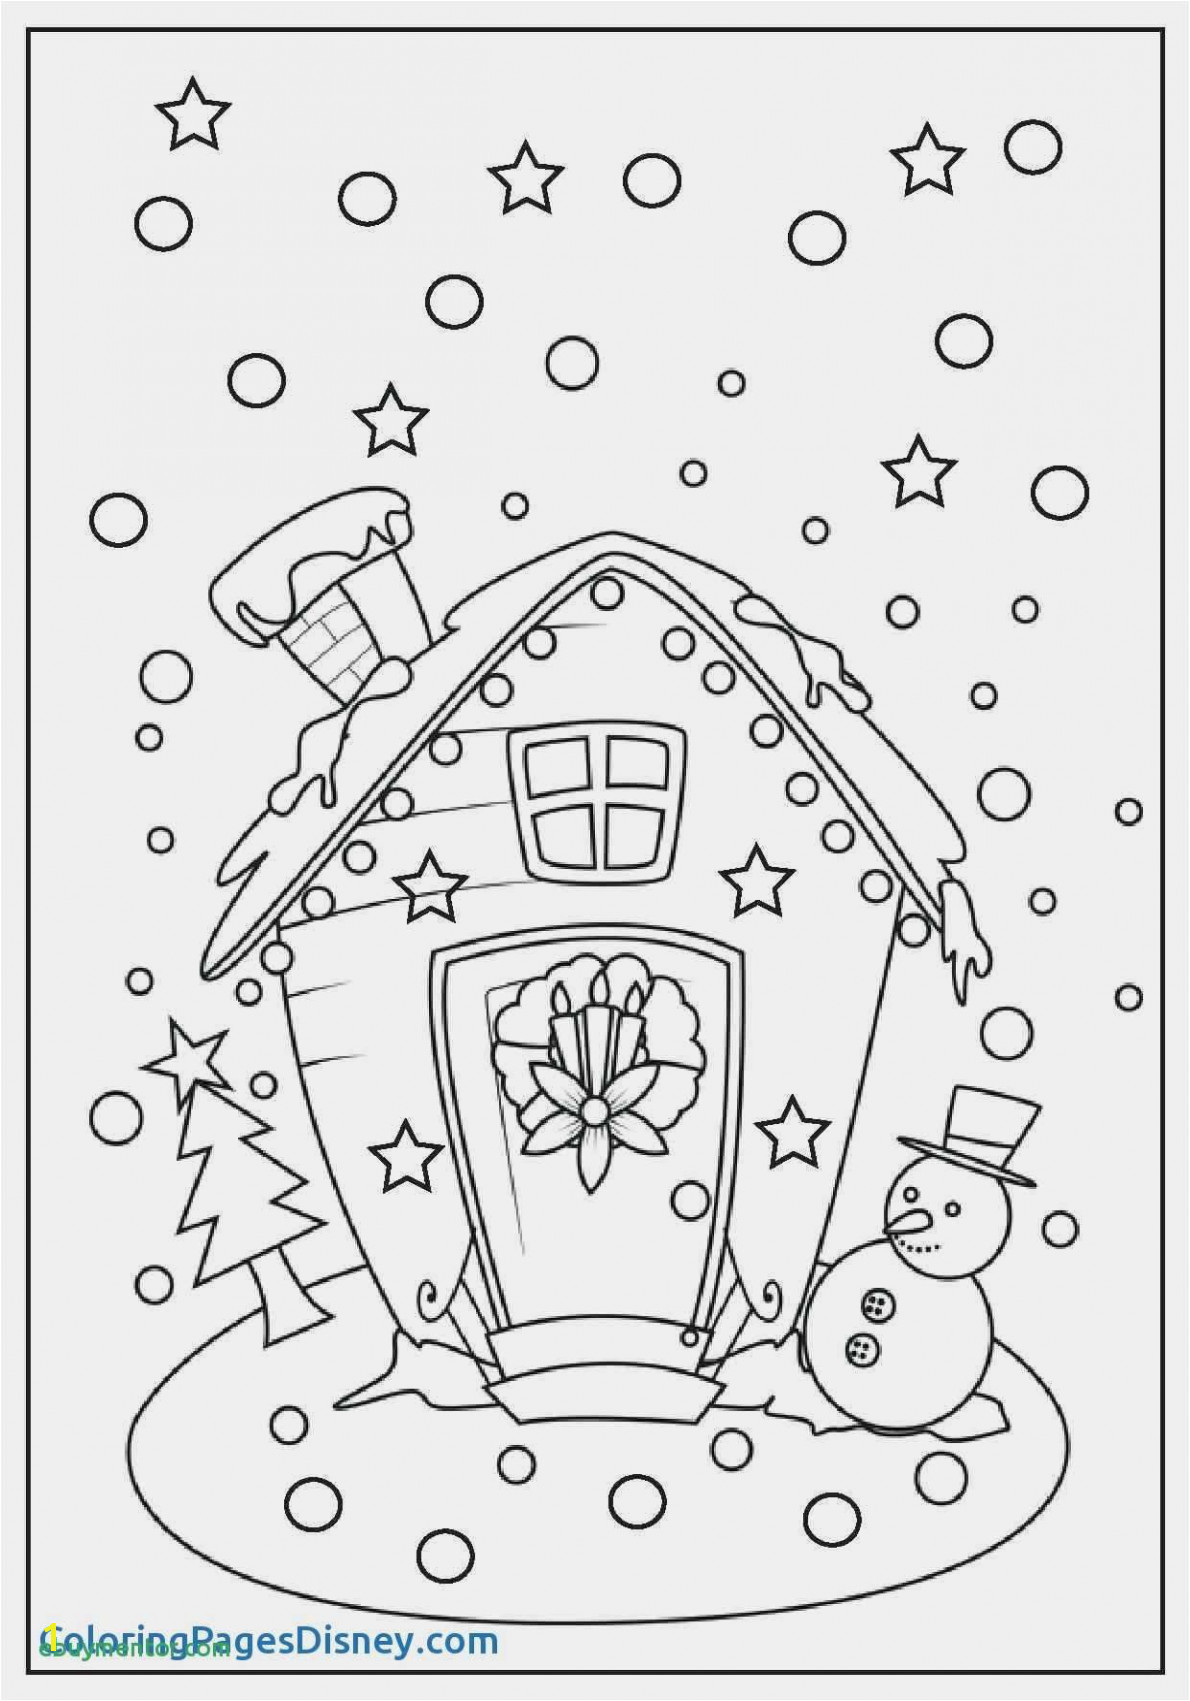 Thanksgiving Coloring Pages Best Christmas Coloring Pages For Preschoolers Inspirational Cool Coloring Printables 0d – Fun